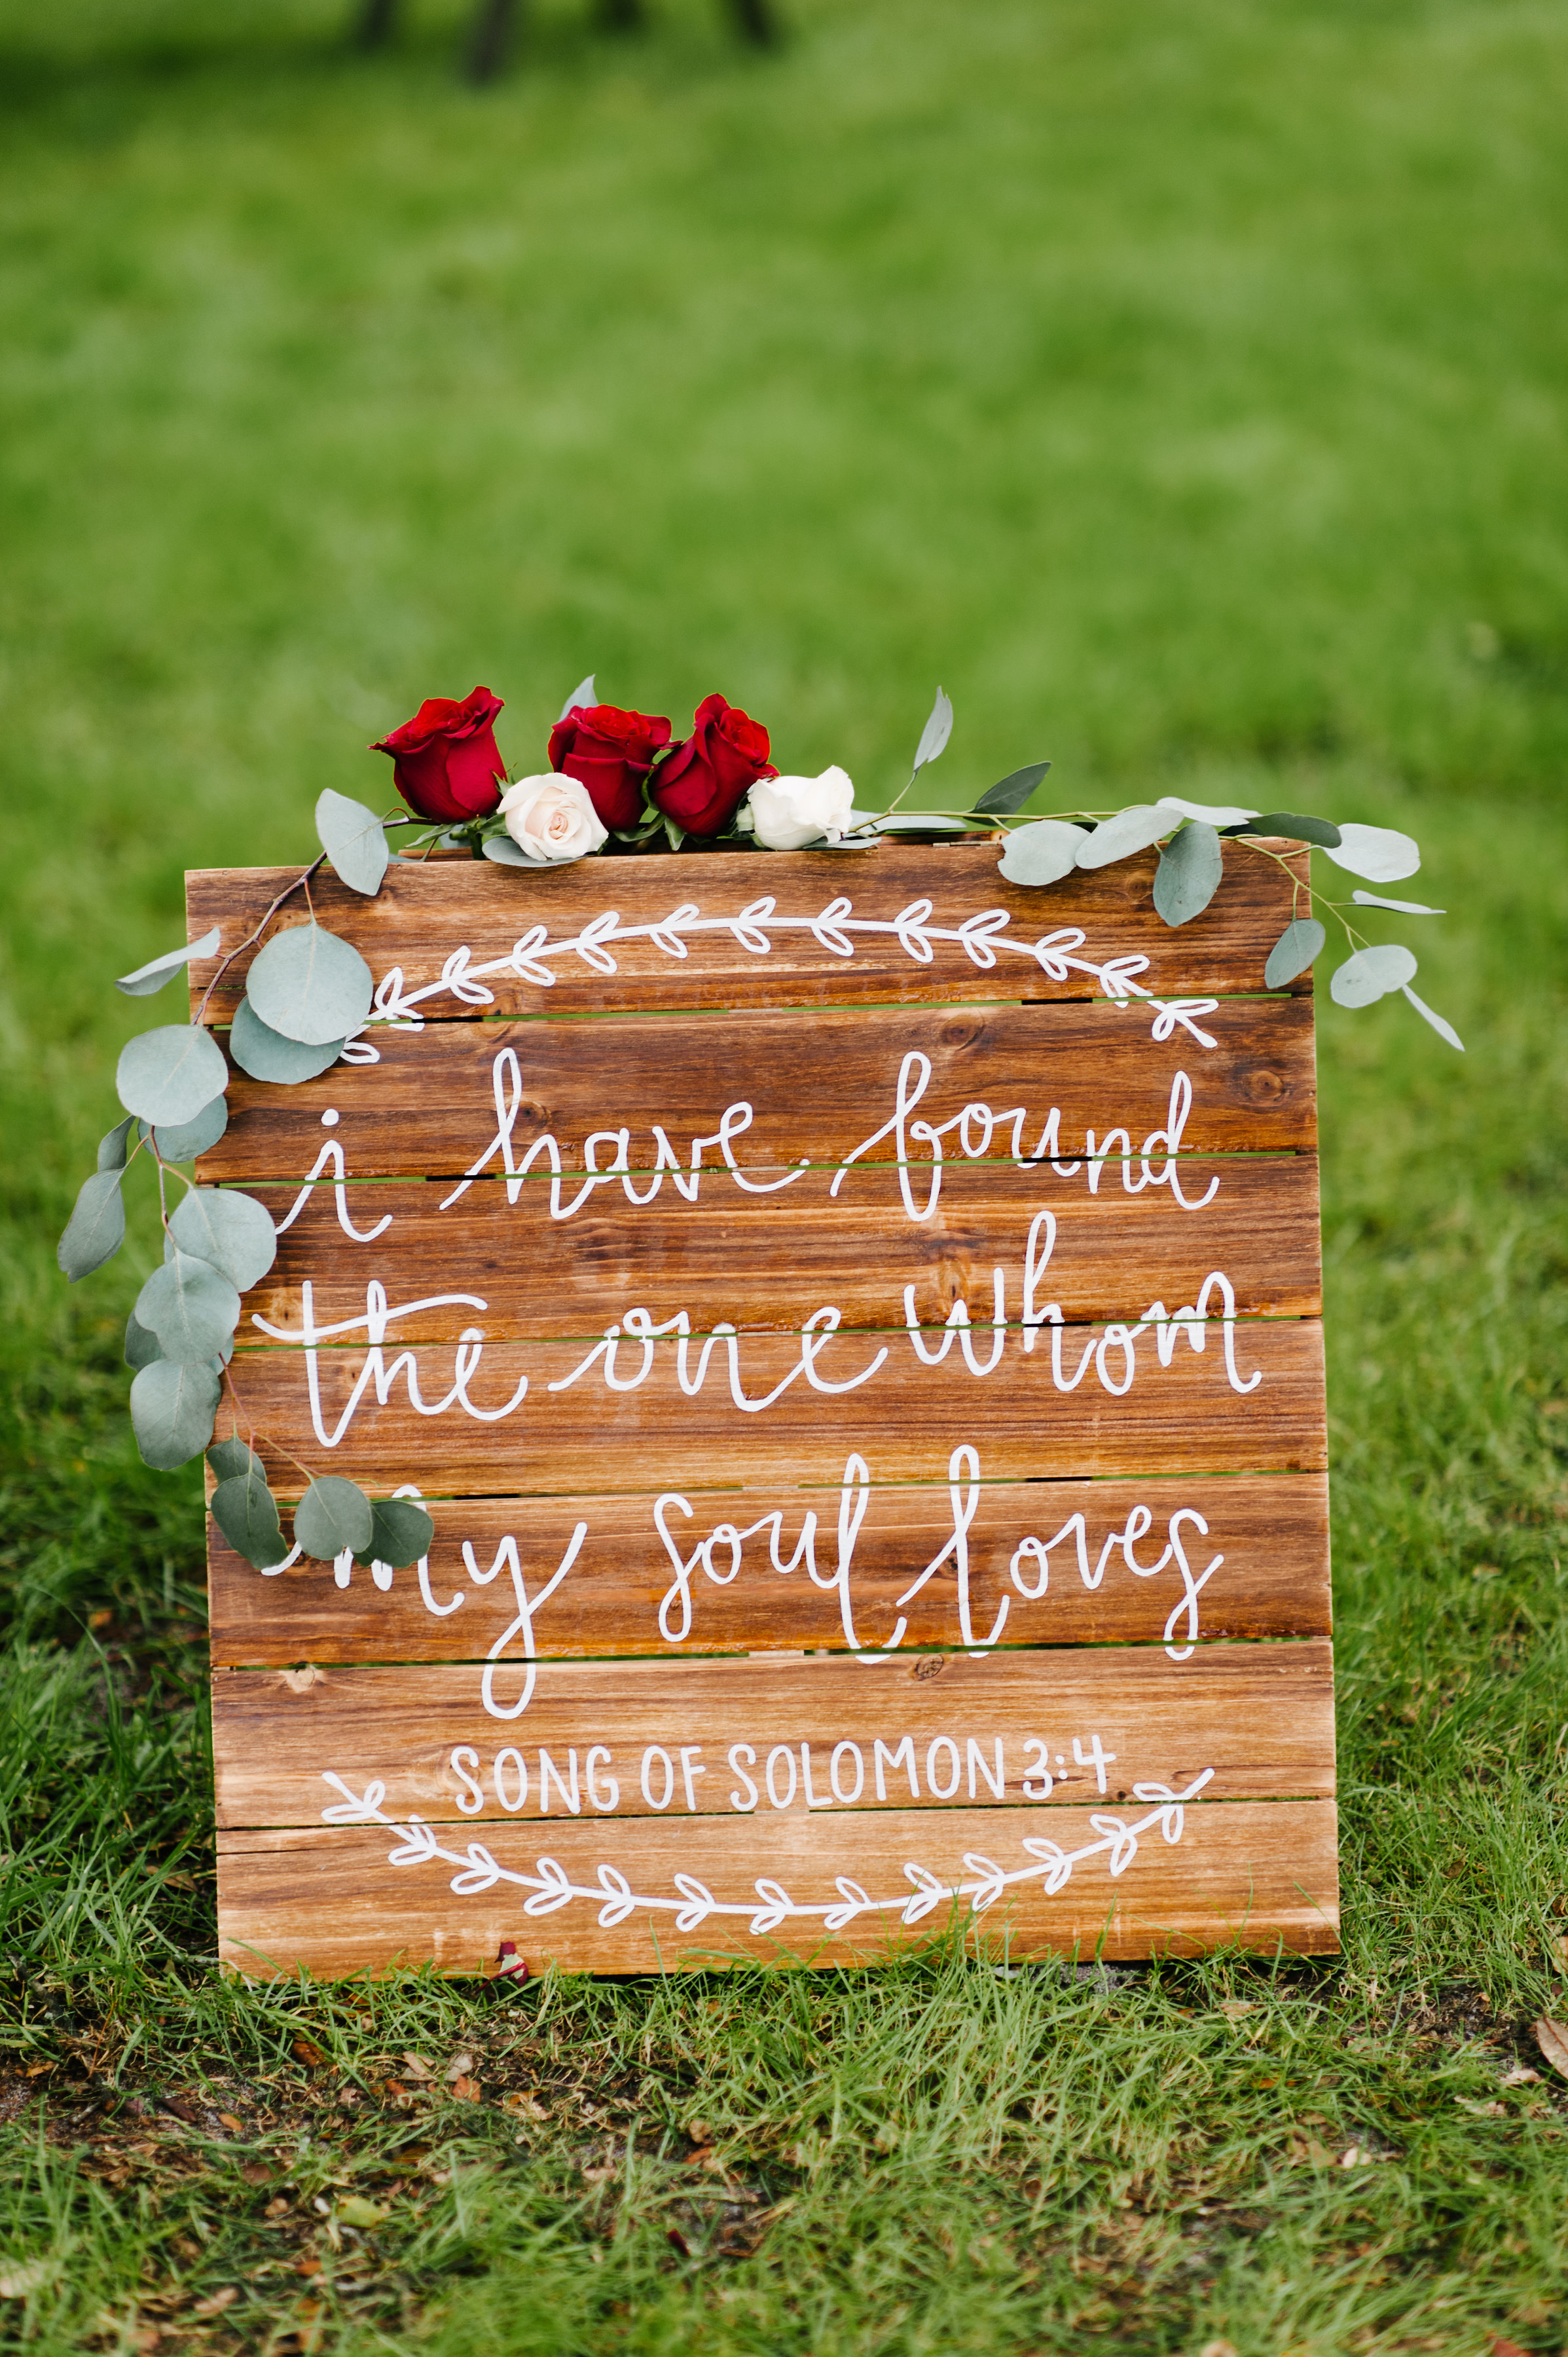 I have found the one whom my soul loves - Song of Solomon